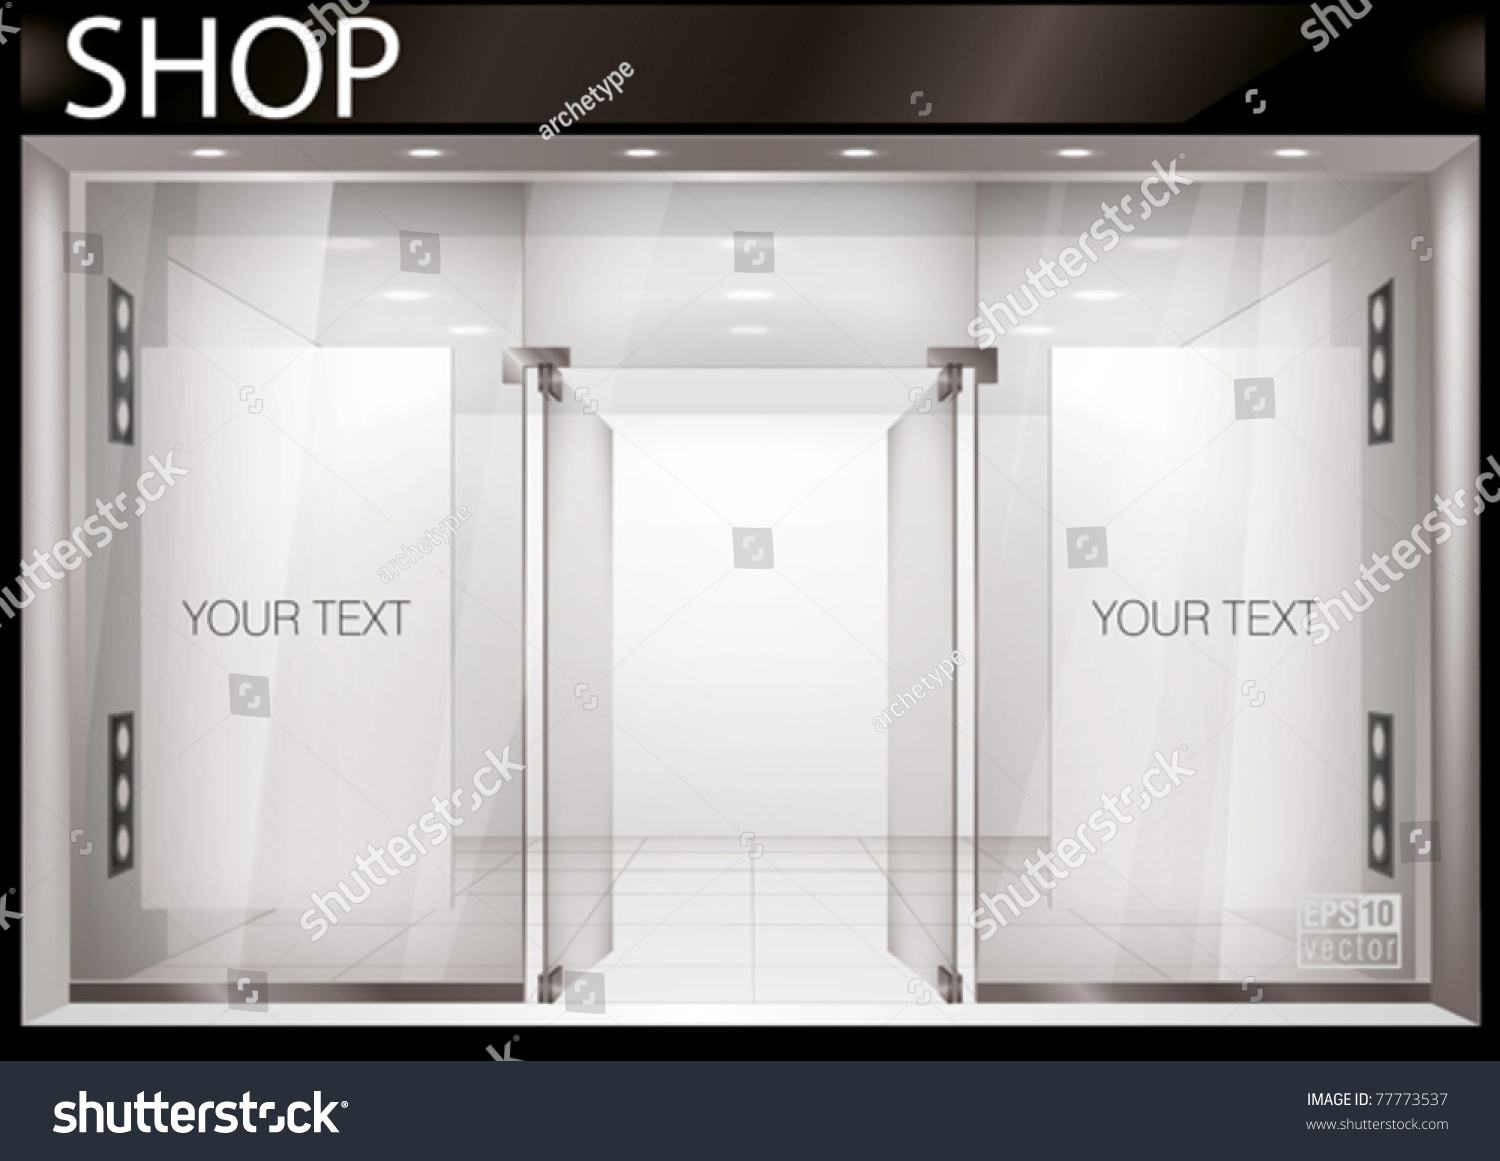 Shop front exterior horizontal windows empty stock vector for Picture window design layout